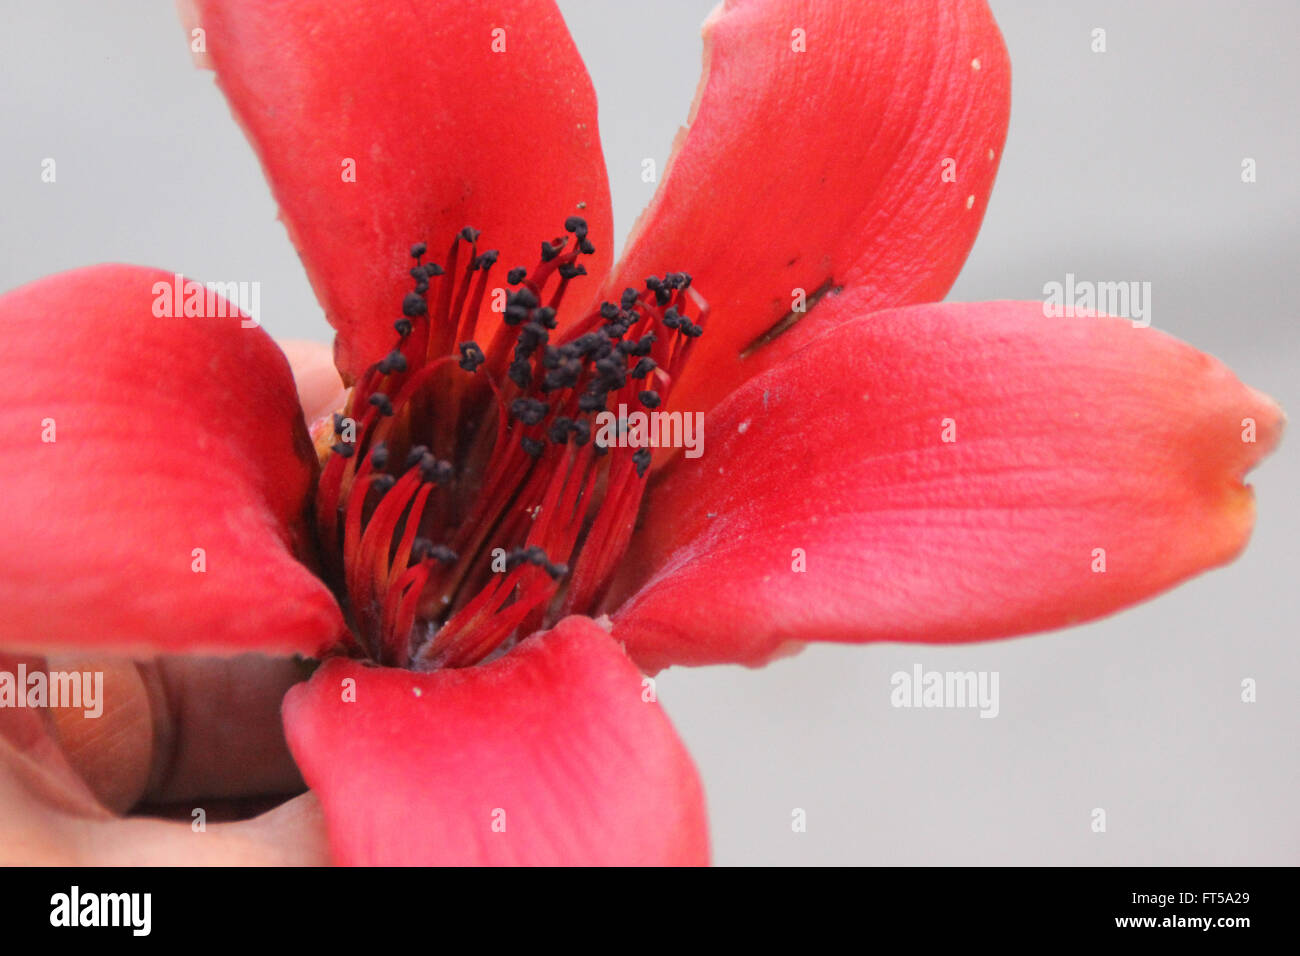 Bombax Ceiba Red Silk Cotton Tree Deciduous Tree With Large Red